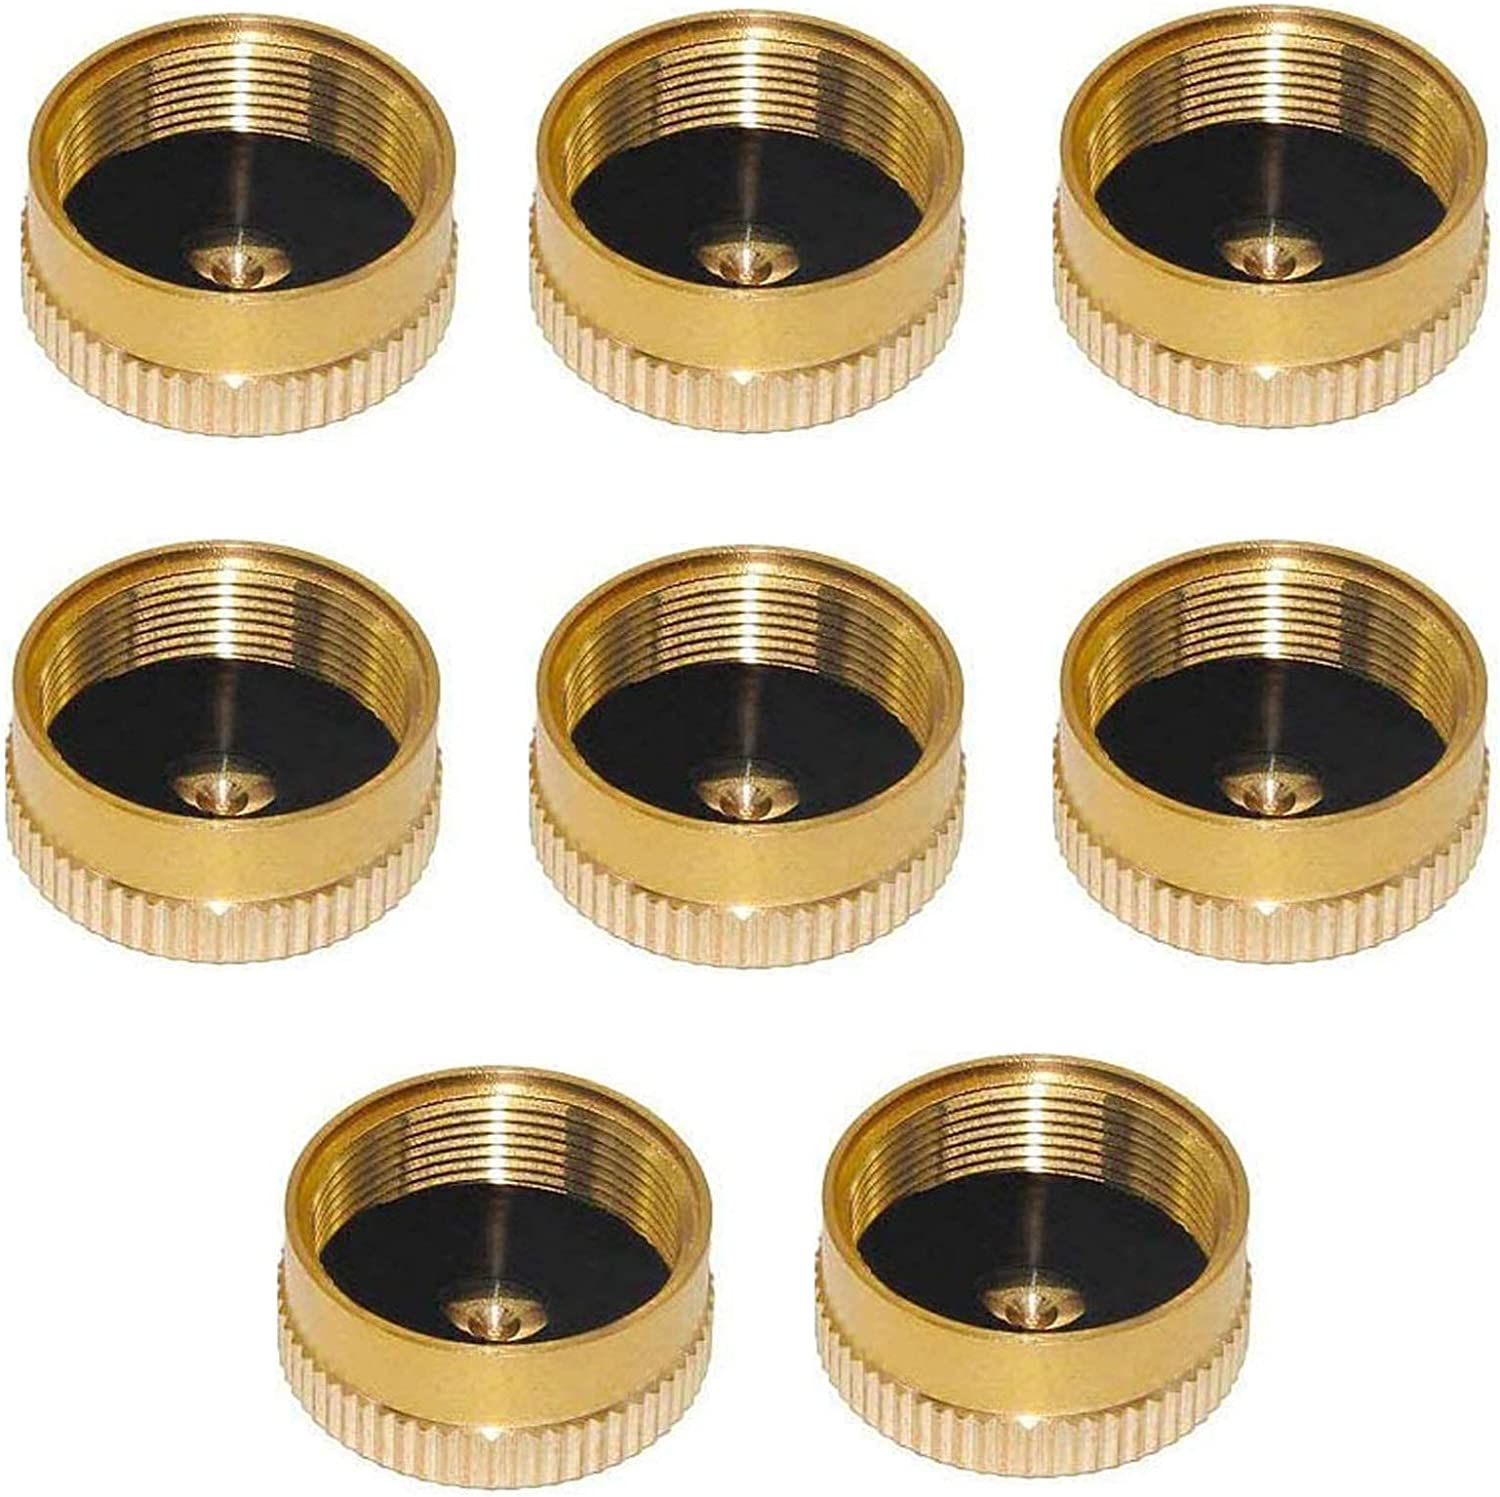 4 Packs Propane Bottle Cap with Brass Construction Propane Cap to Prevent Gas Leaking FengJIN HZFJ 4PCS Solid Brass Refill 1lb Oxygen//Propane Tank Cap for Outdoor Camping Stove Cooking